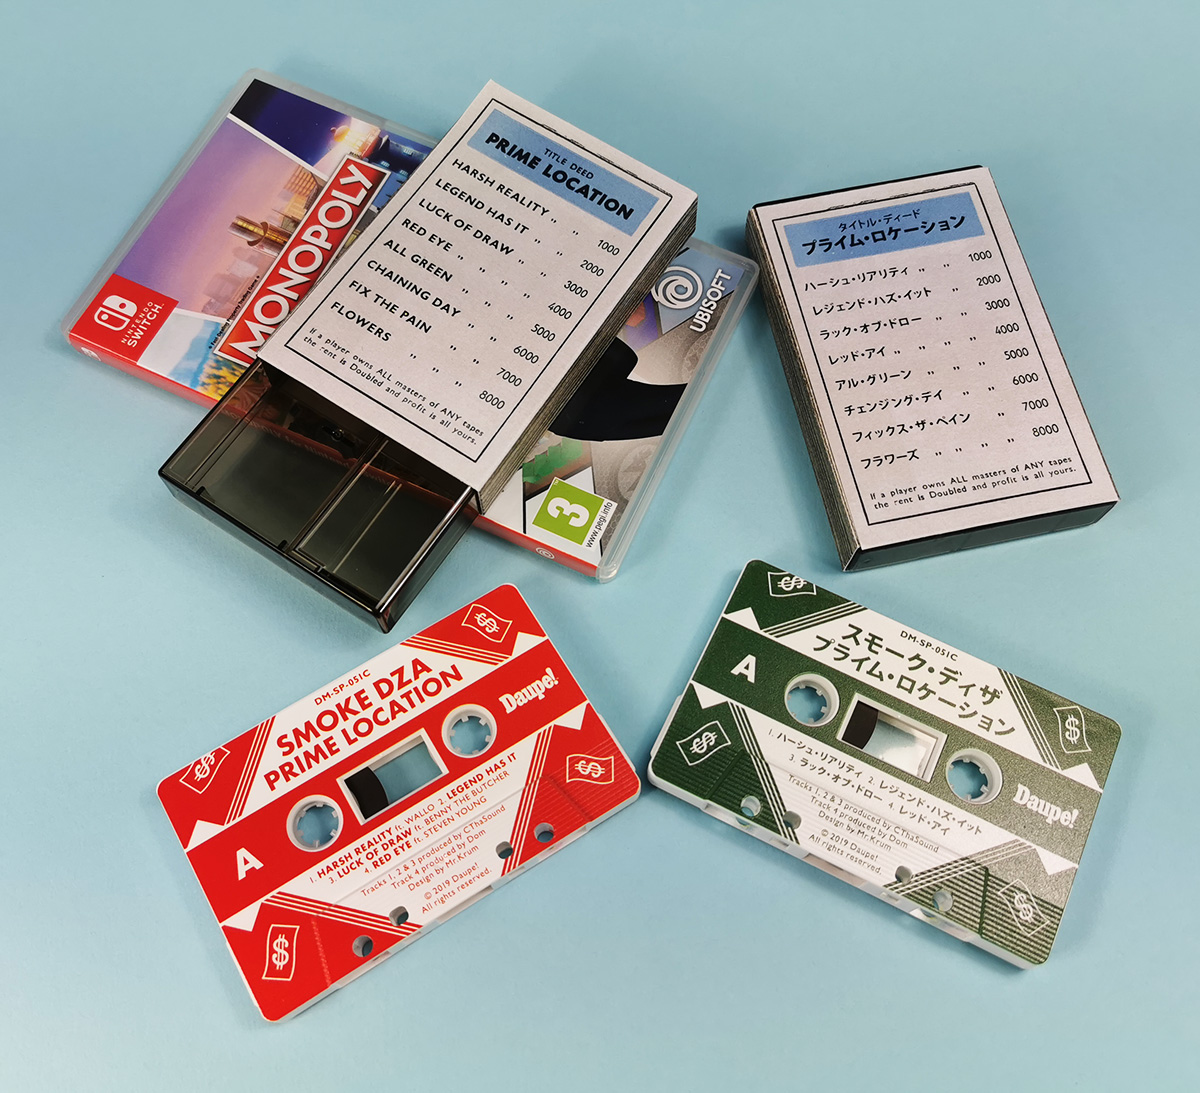 Monopoly-style outer cassette case O-cards for the English and Japanese versions of these tapes